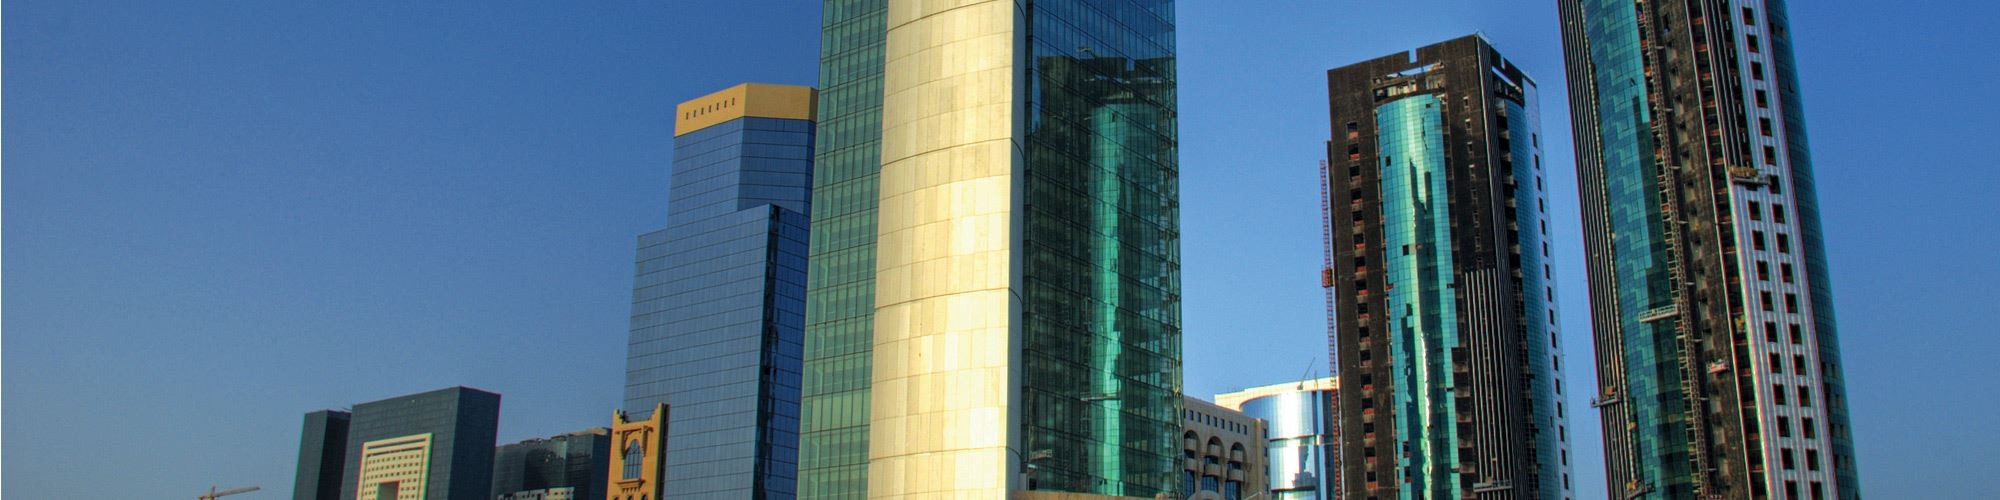 Commercial Bank Plaza Doha Banner 1